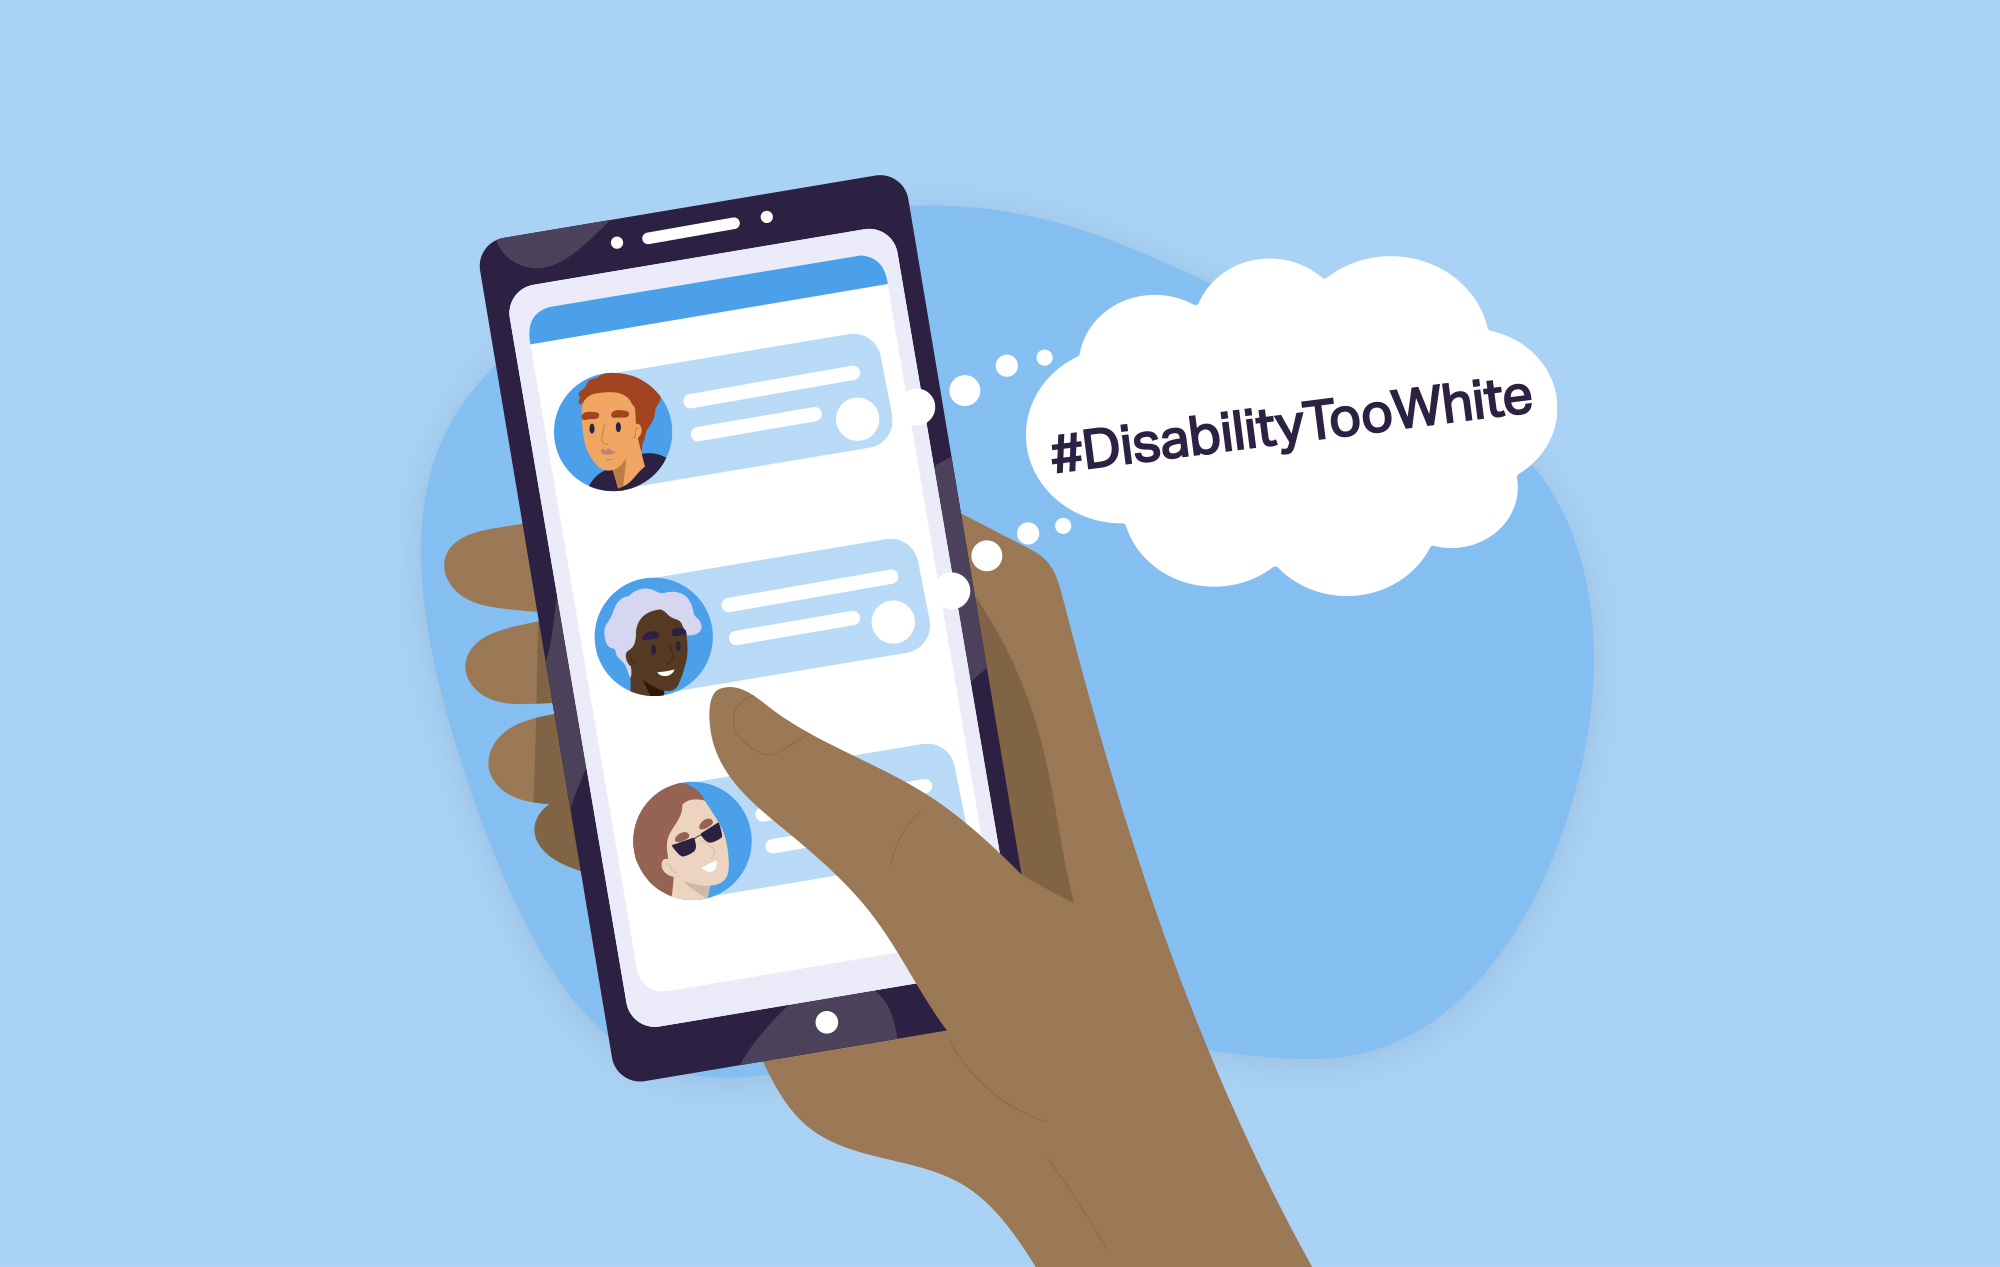 Illustration of a person holding a smartphone using a Twitter-like social media platform—a speech bubble extends from the phone with the text #DisabilityTooWhite.